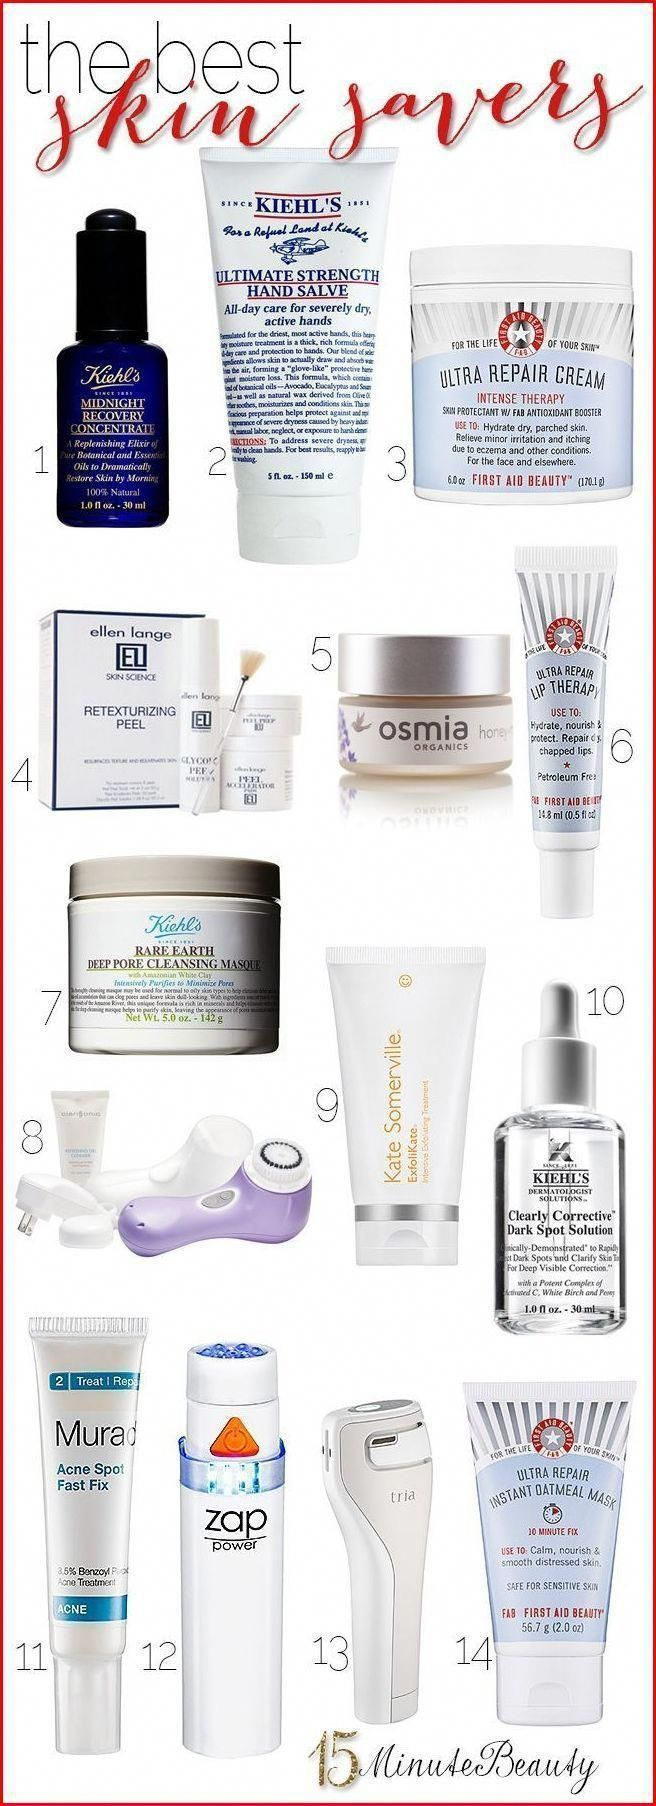 Best Skin Care Regimen For 20 Year Olds Best Skin Care Routine For 30 Year Olds Best Skin Care Routine In Yo Good Skin Facial Skin Anti Aging Skin Products